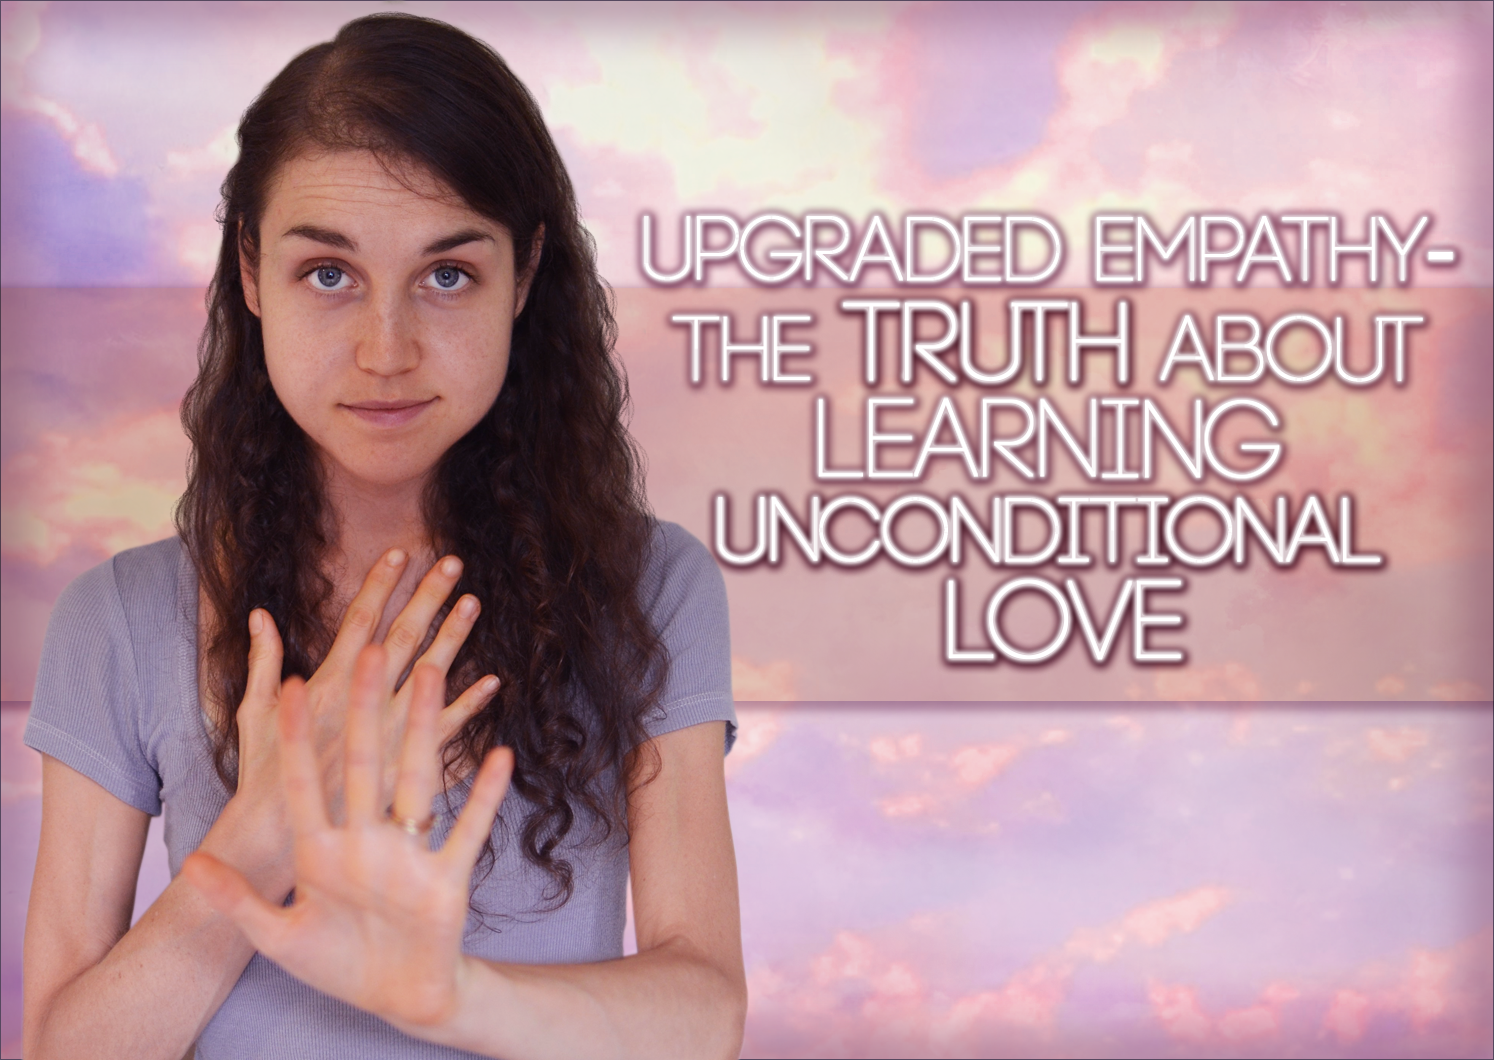 Upgraded Empathy – The Truth About Learning Unconditional Love